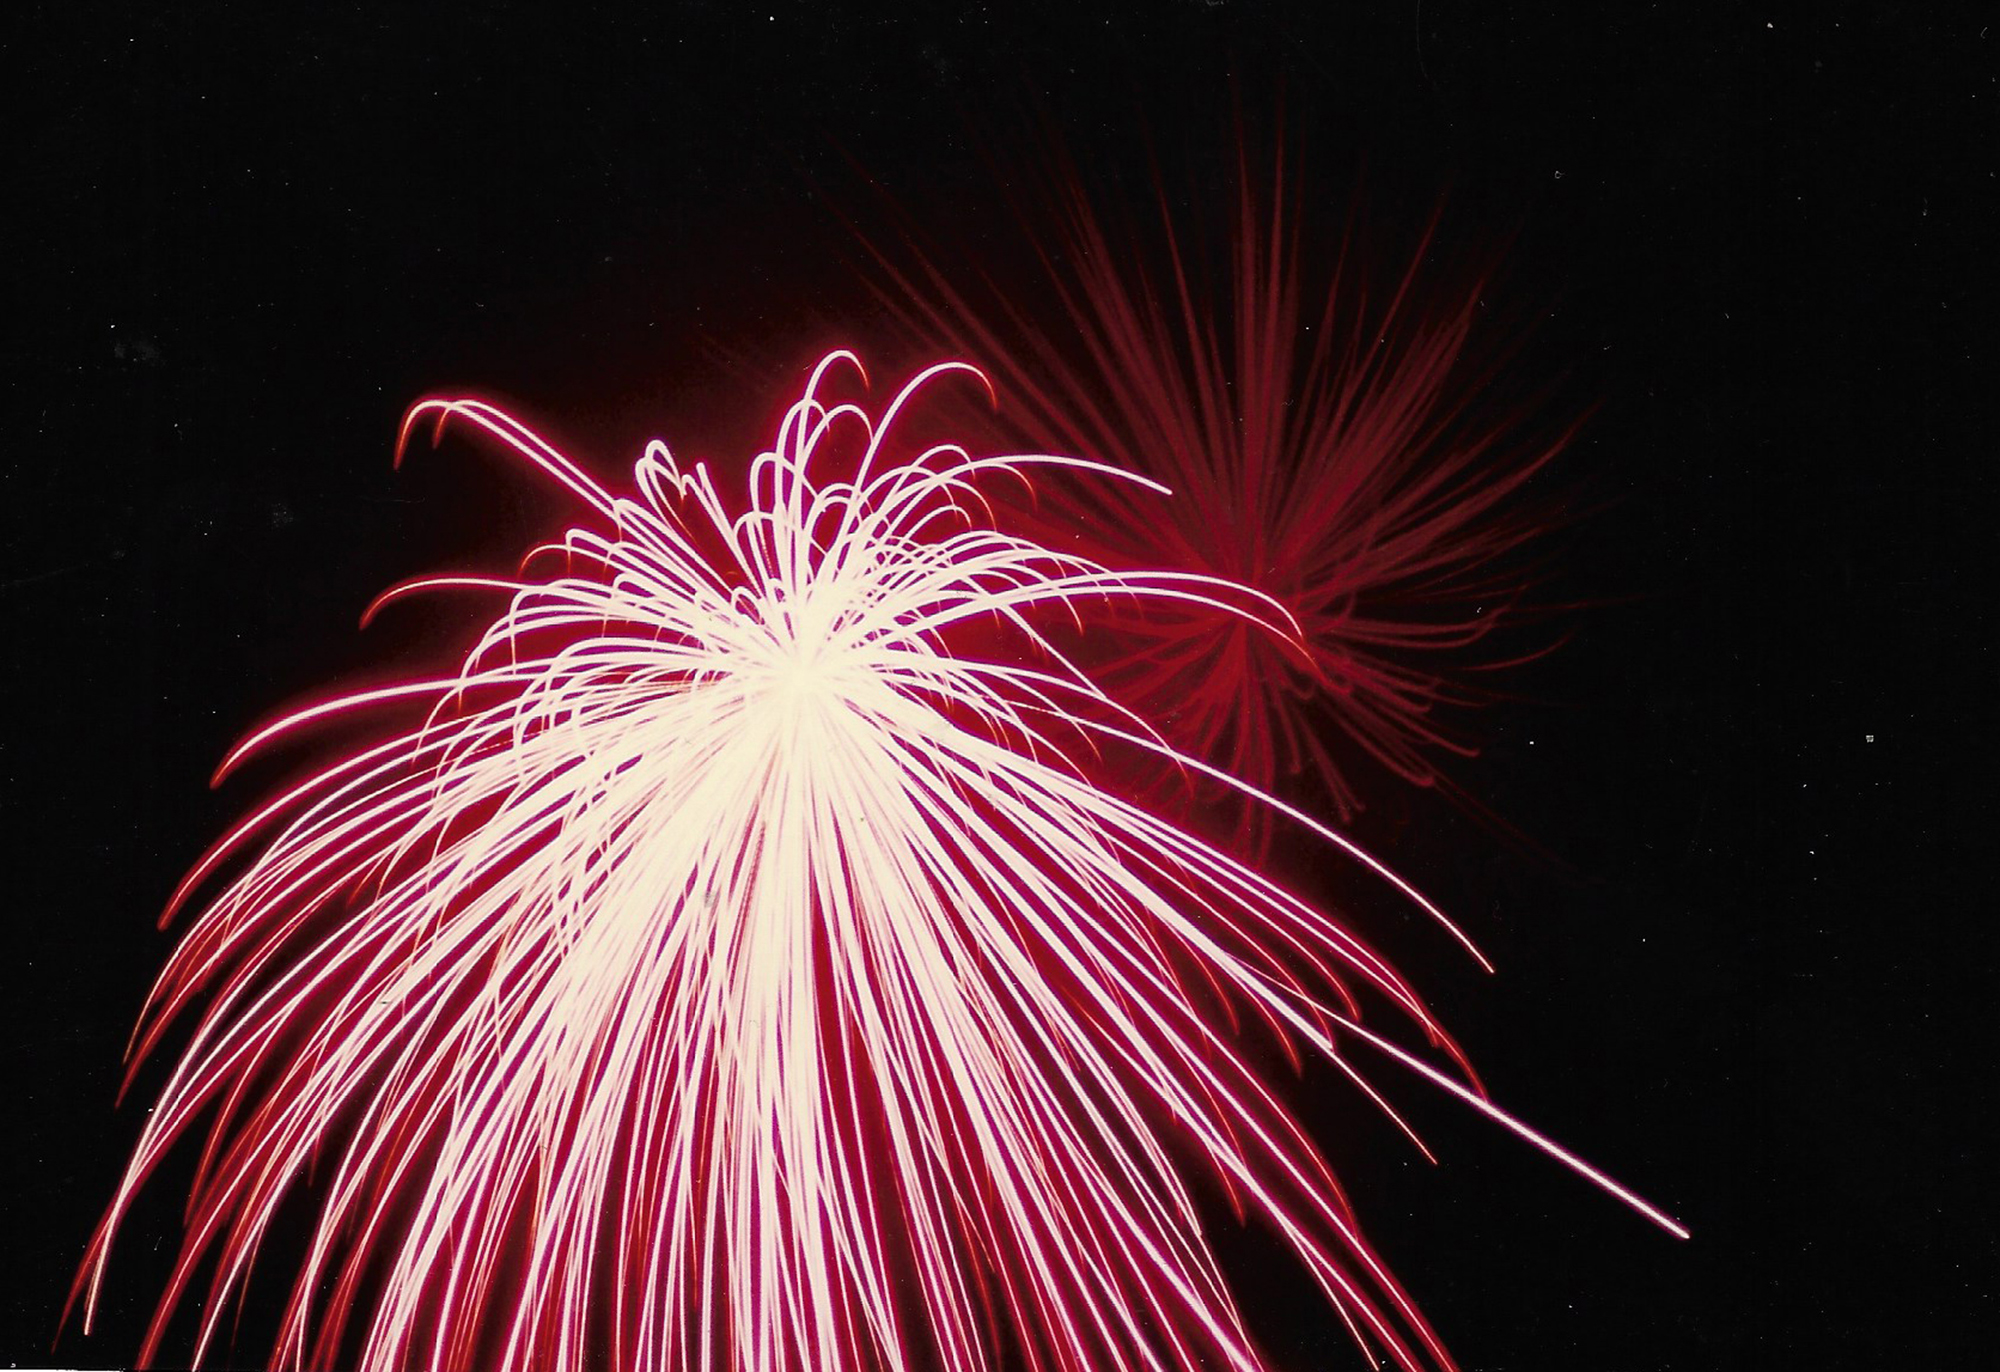 100 years of Rotary means special fireworks on New Year's Eve